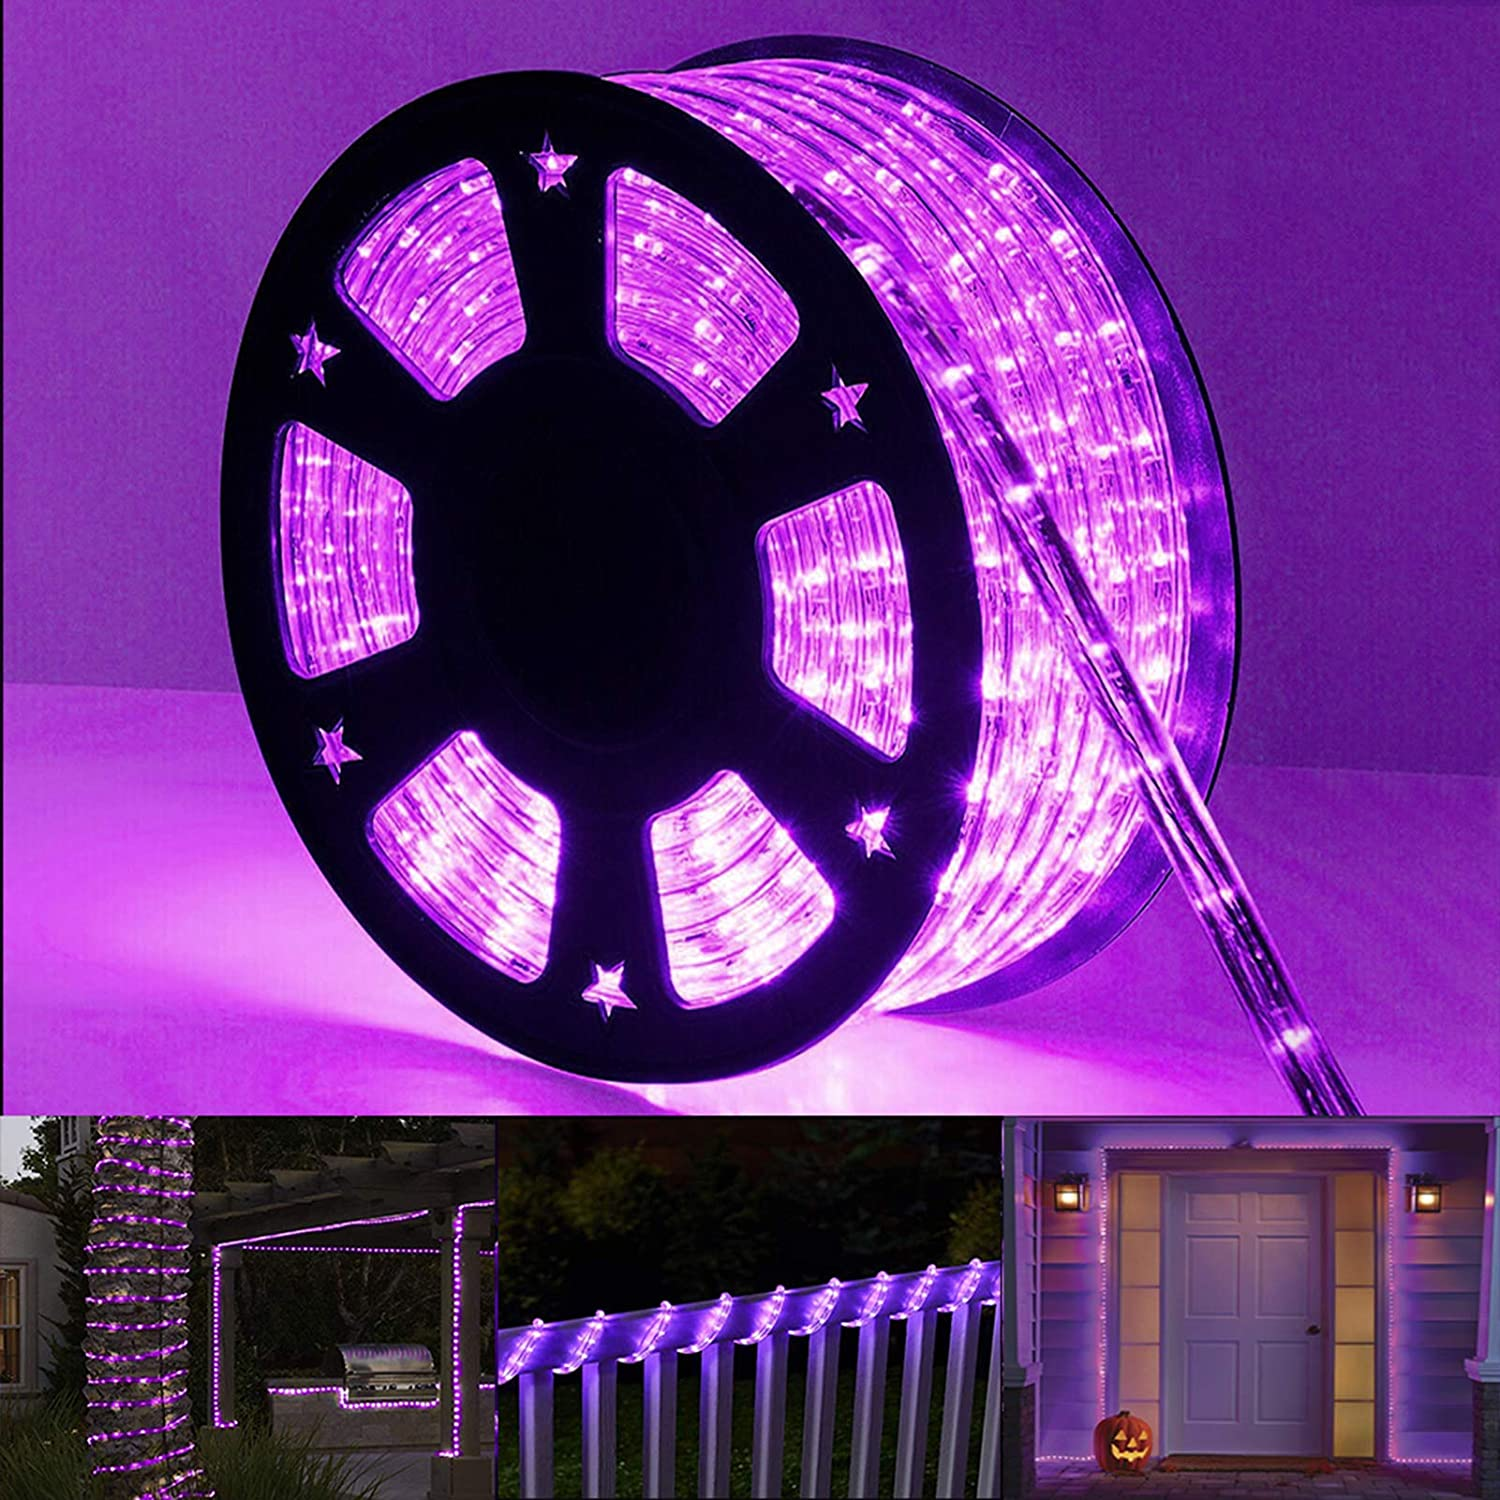 Purple Halloween Lights 98ft 720 Ranking TOP19 Ranking TOP1 Connectable P LED and Flexible